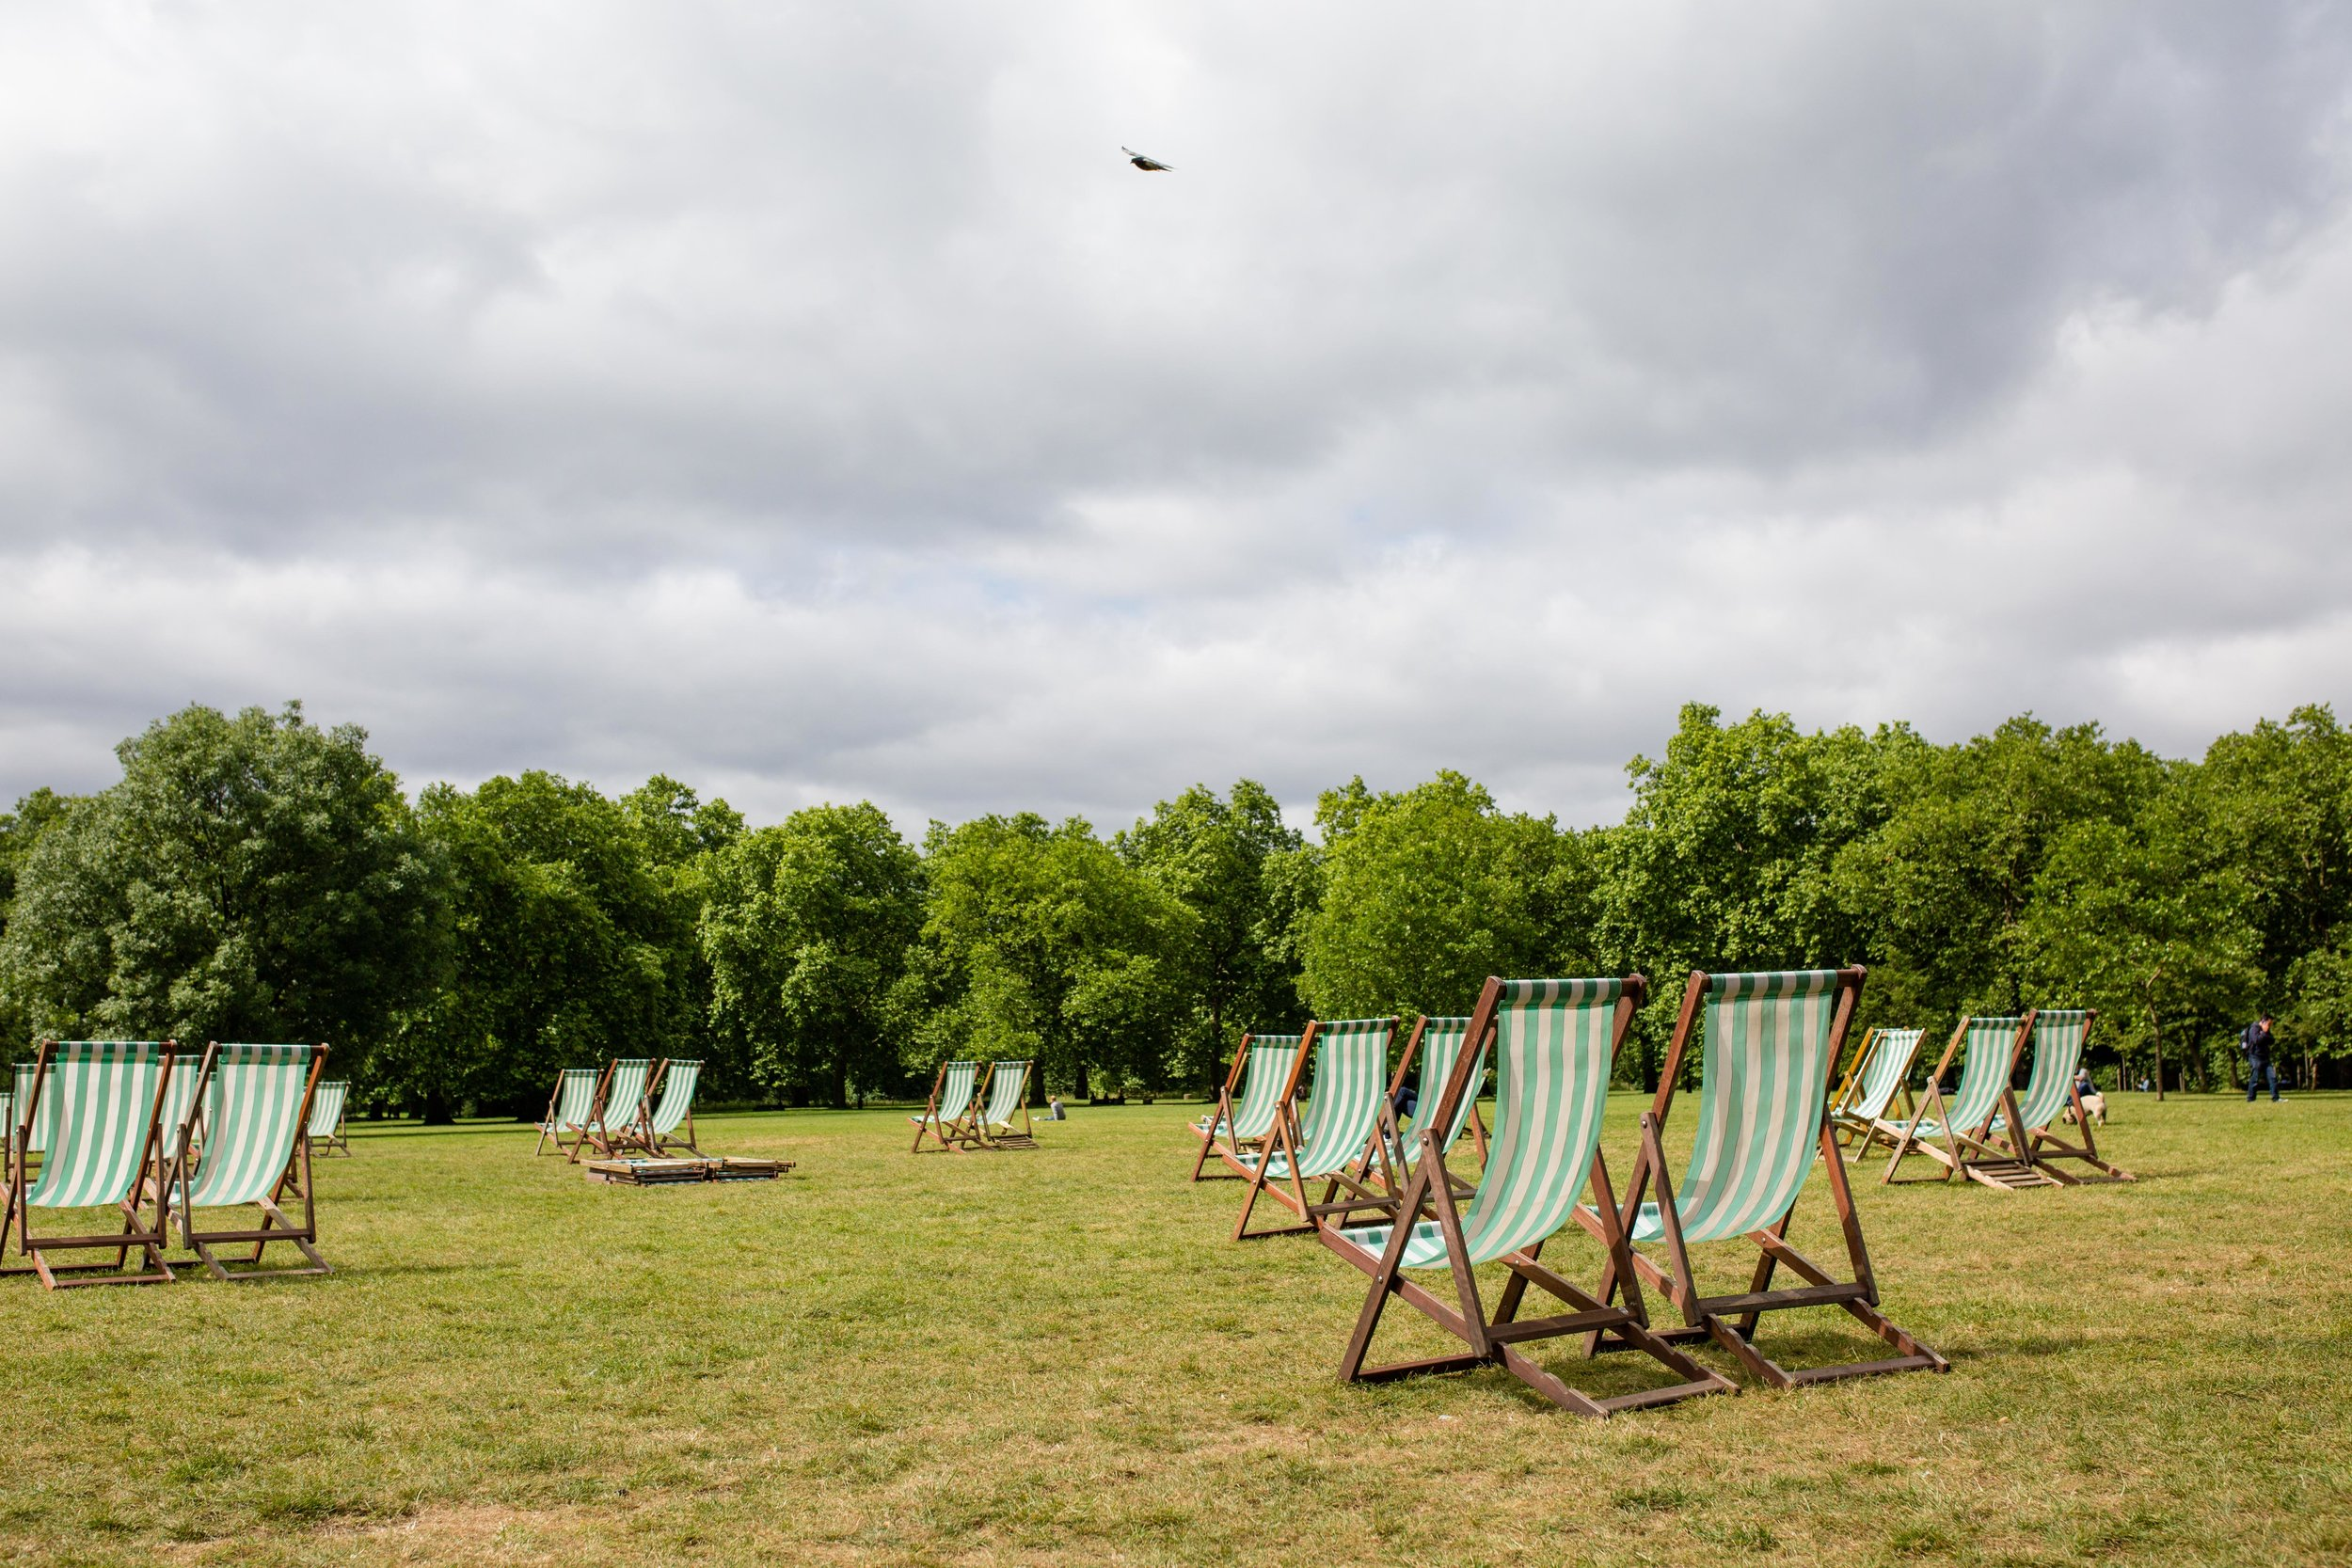 Deck chairs at the ready in Green Park